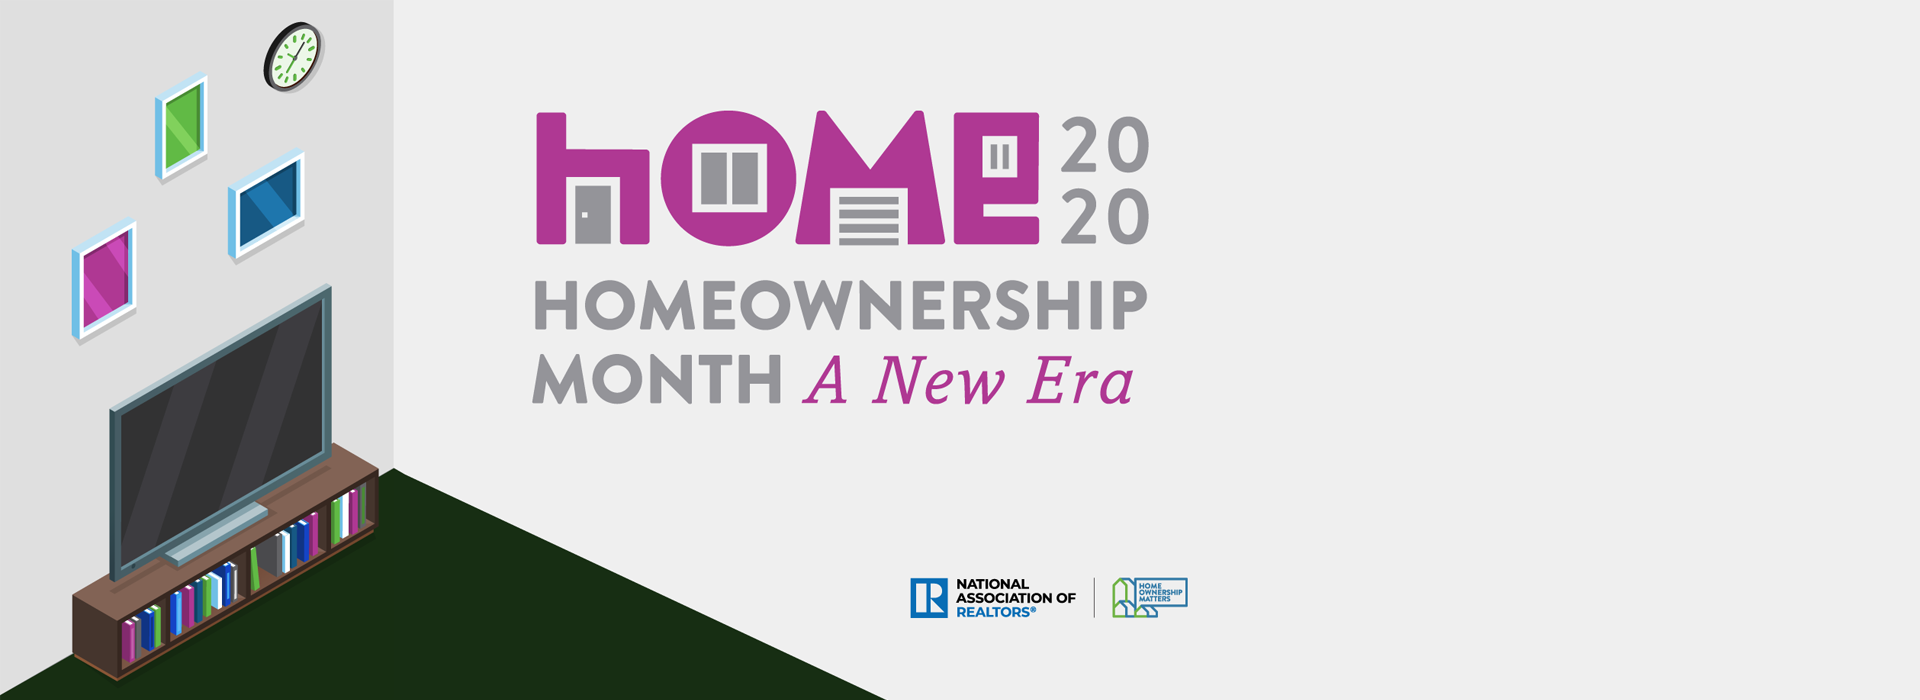 Promote Homeownership Month with Your Clients